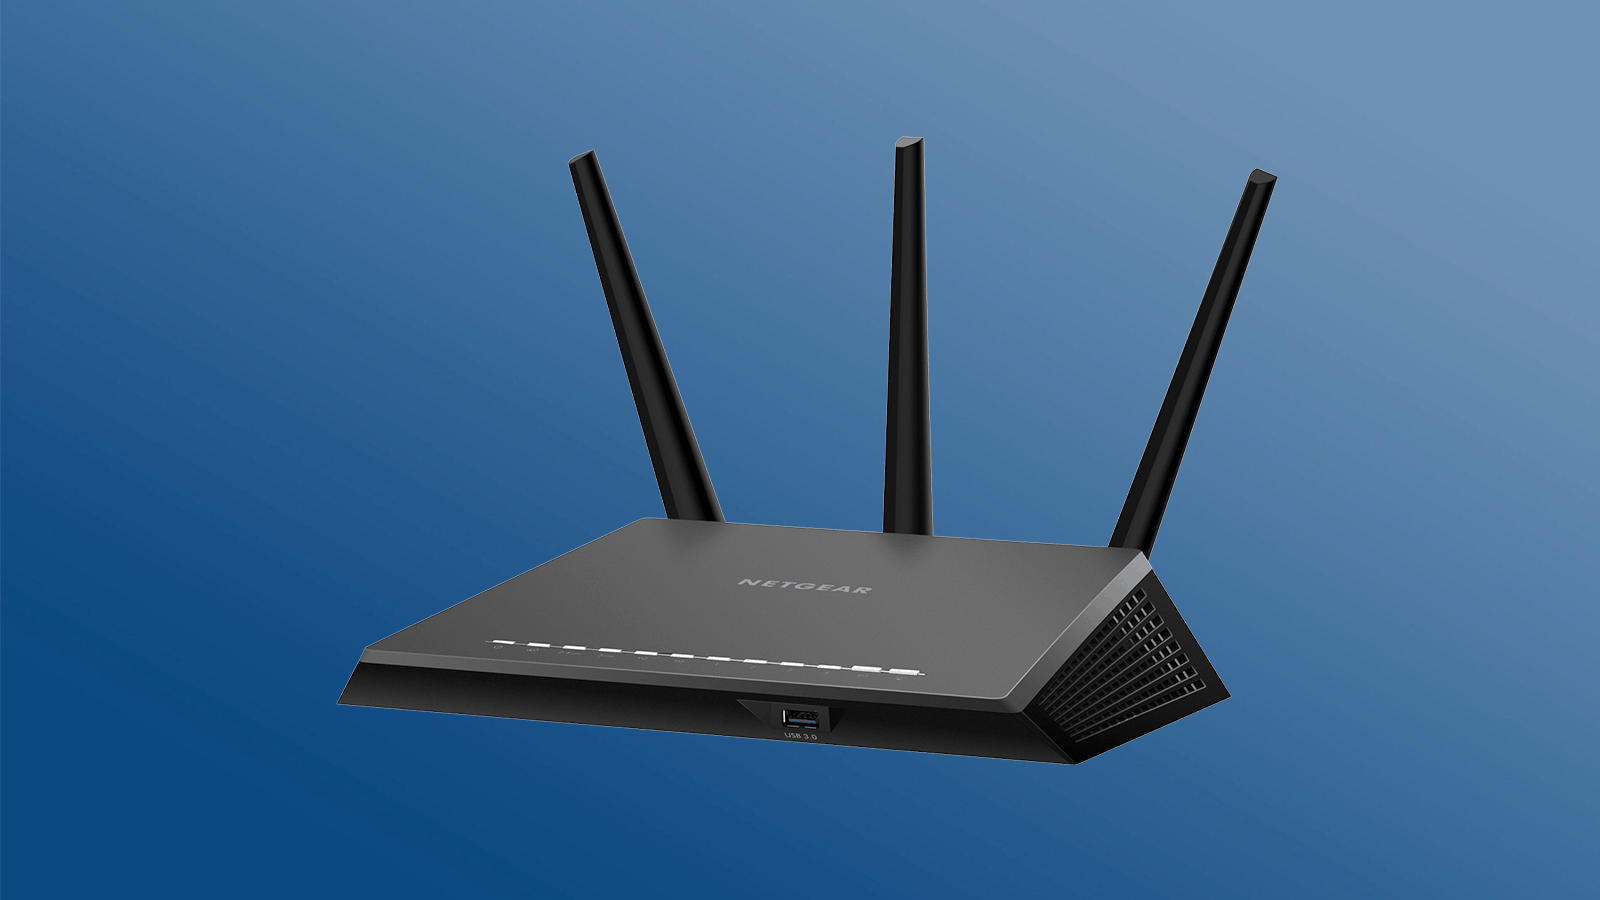 10 Best DD-WRT Routers Under $100 (2019) – Best Value for